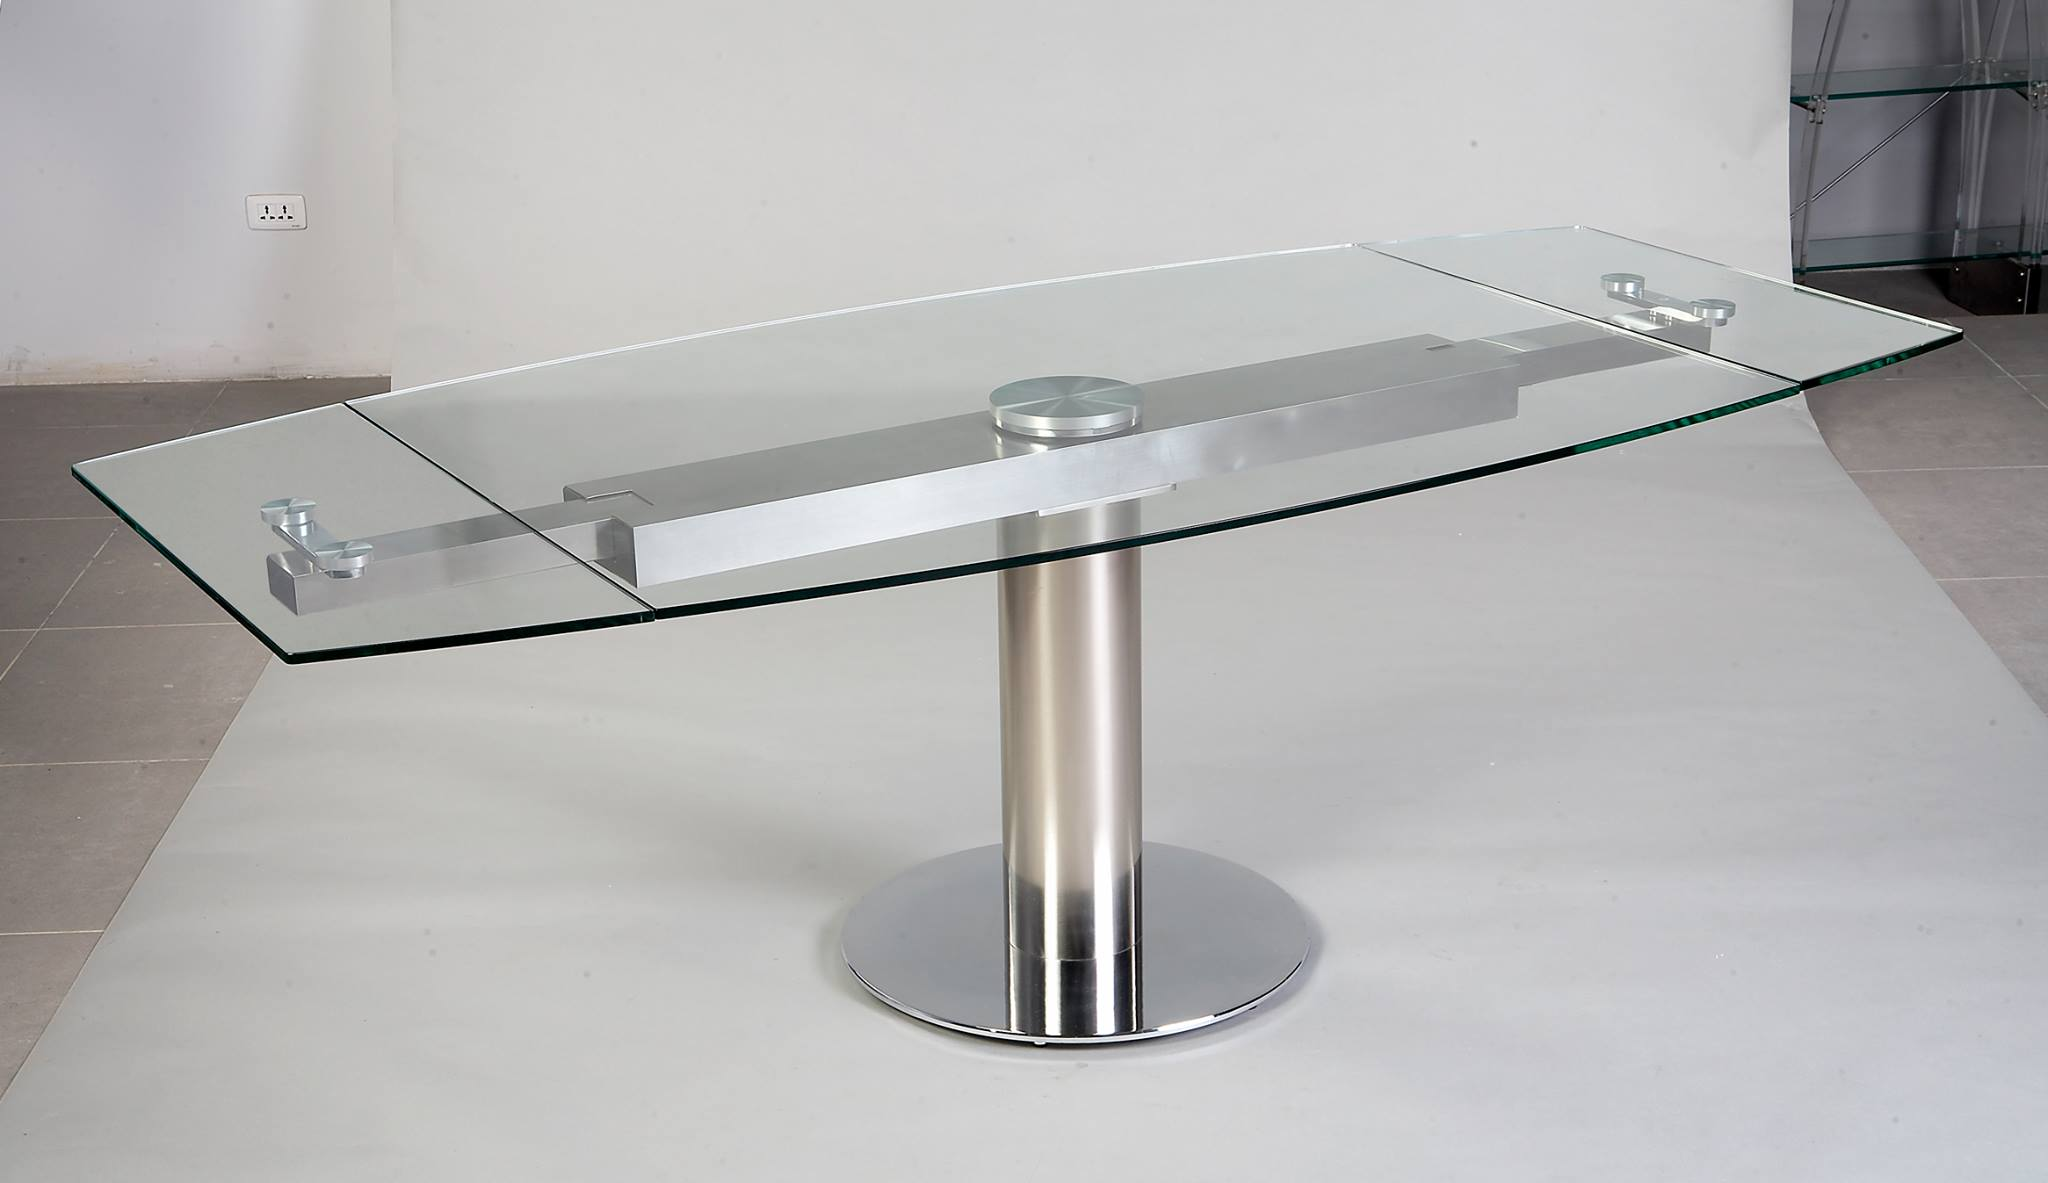 Table verre pied central allonge for Table verre rallonge salle manger